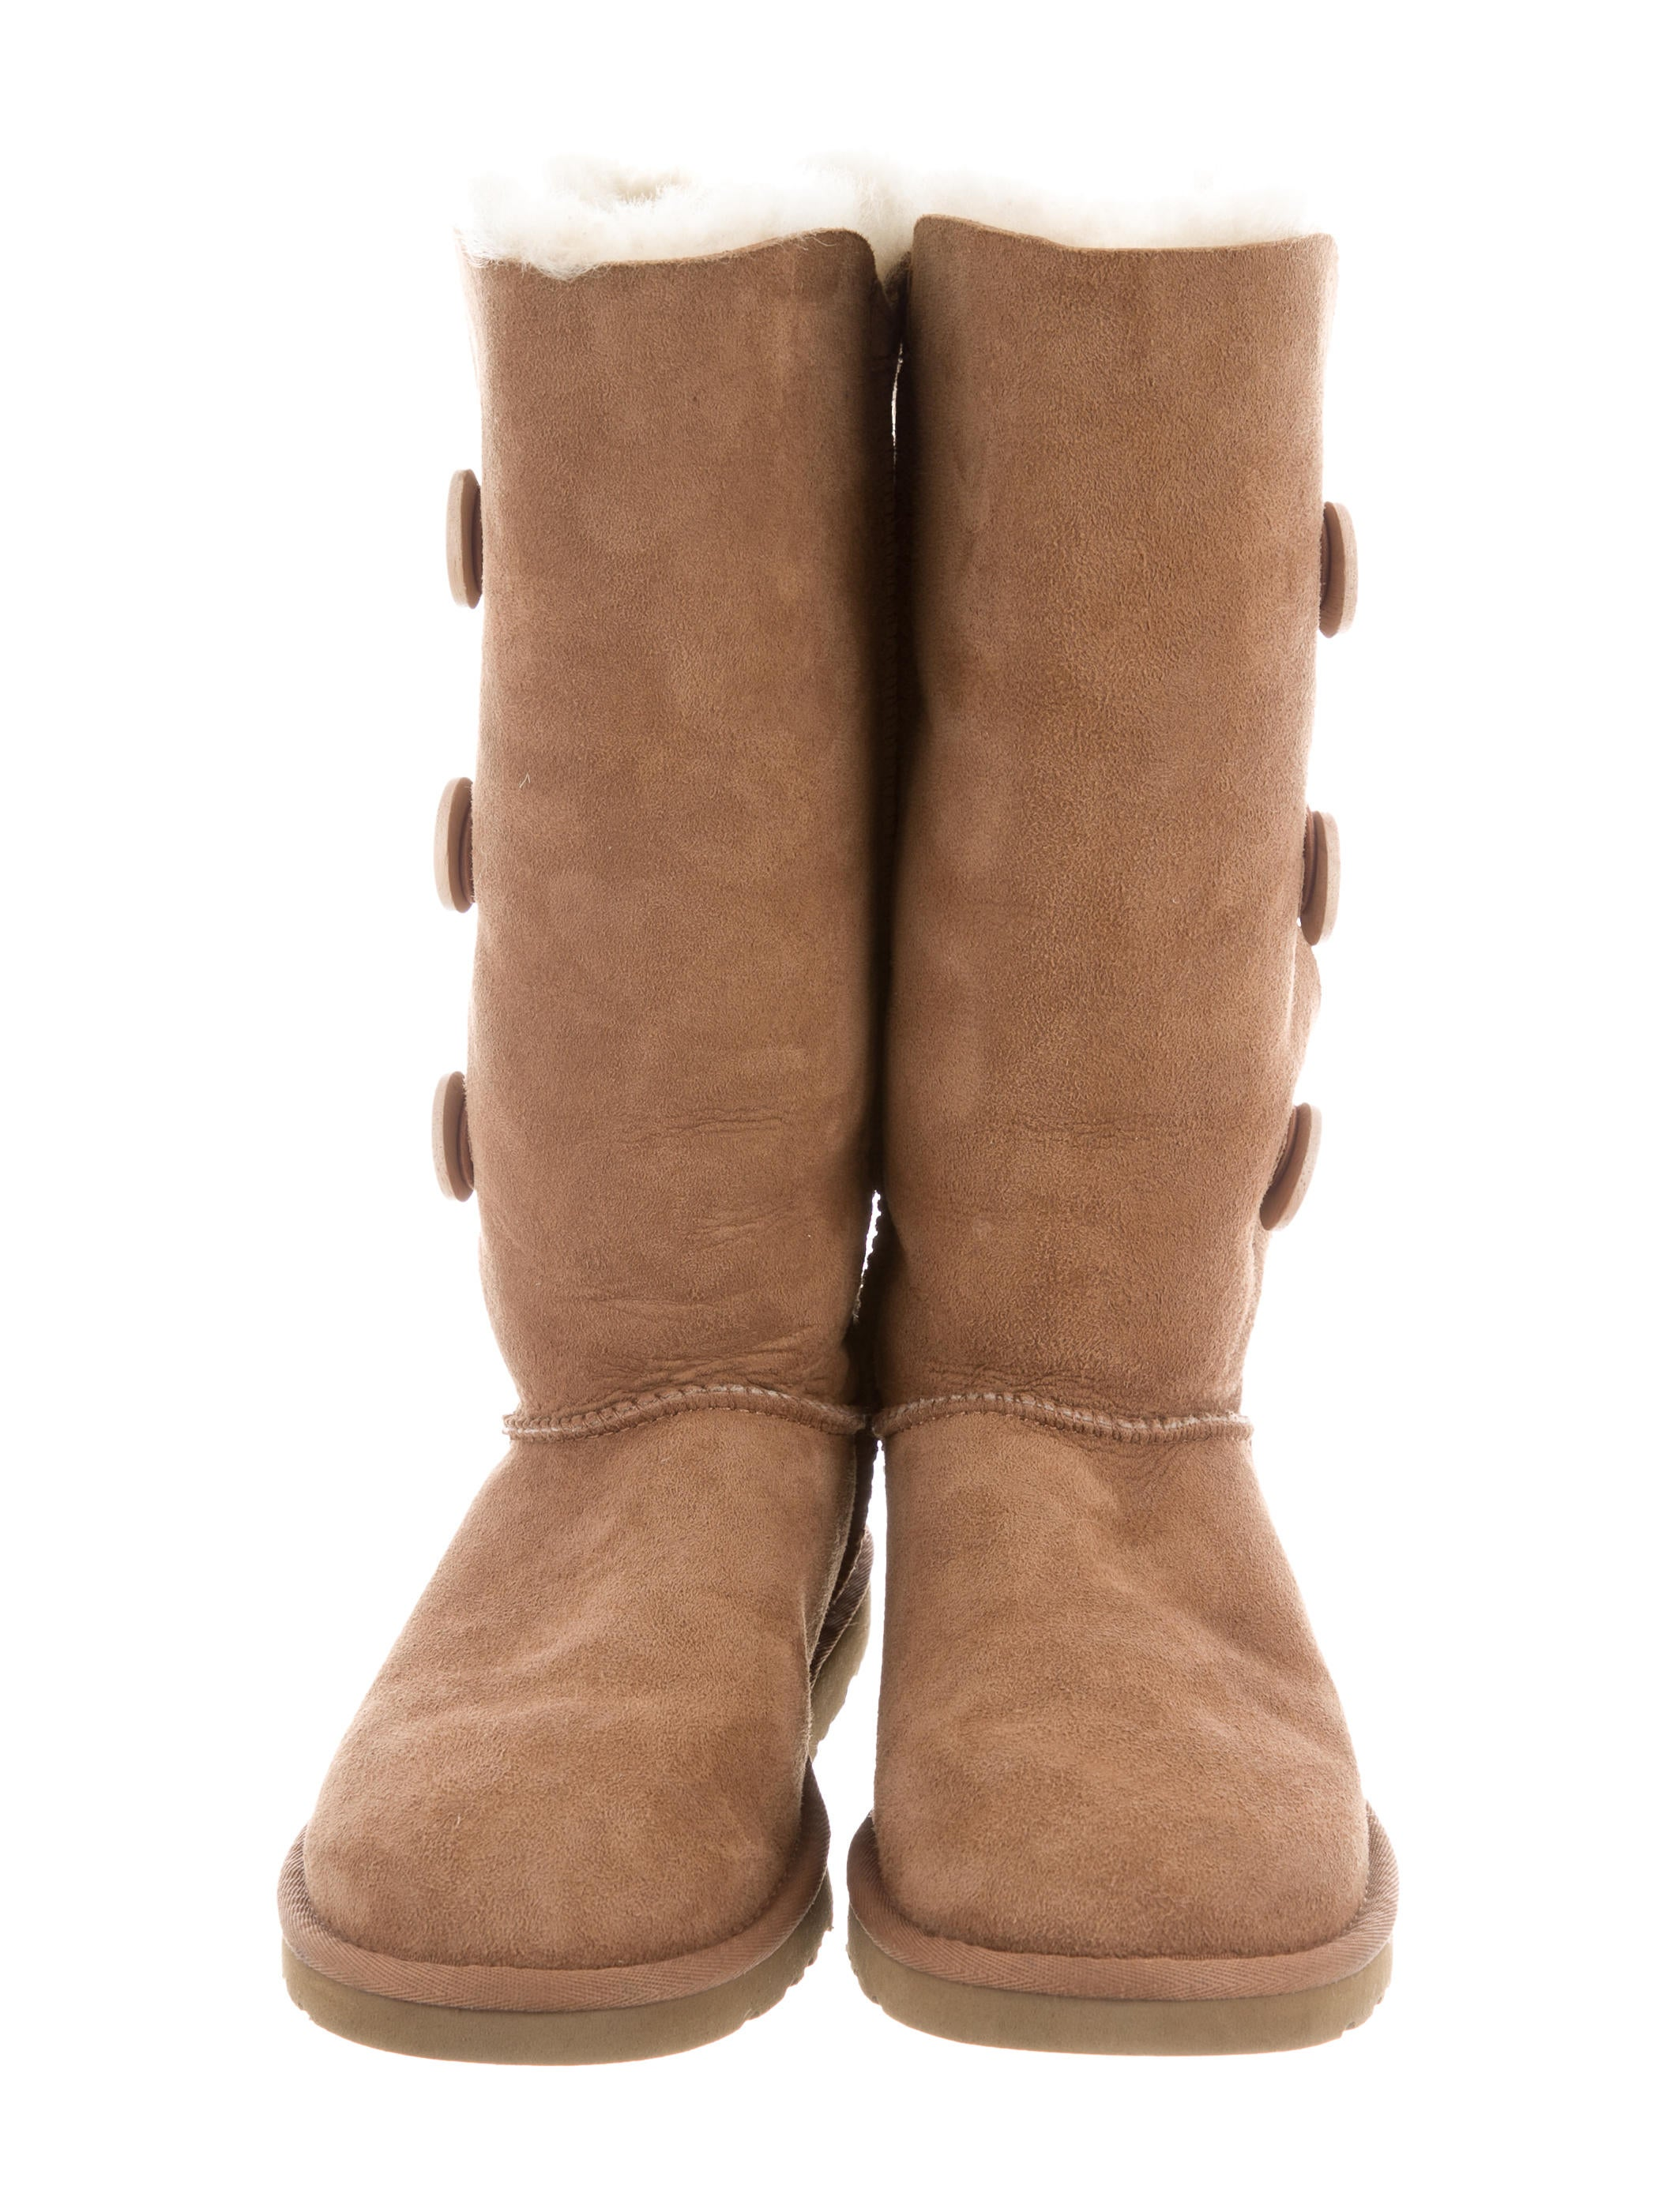 Plow & Hearth: Free shipping on Australia footwear by UGG. Ends Dec. 31, $6 avg saved. Get Coupon. Save. When placing our test orders, these coupons for UGG weren't working but you may want to try for yourself since we have been known to make mistakes. Coupon Code.